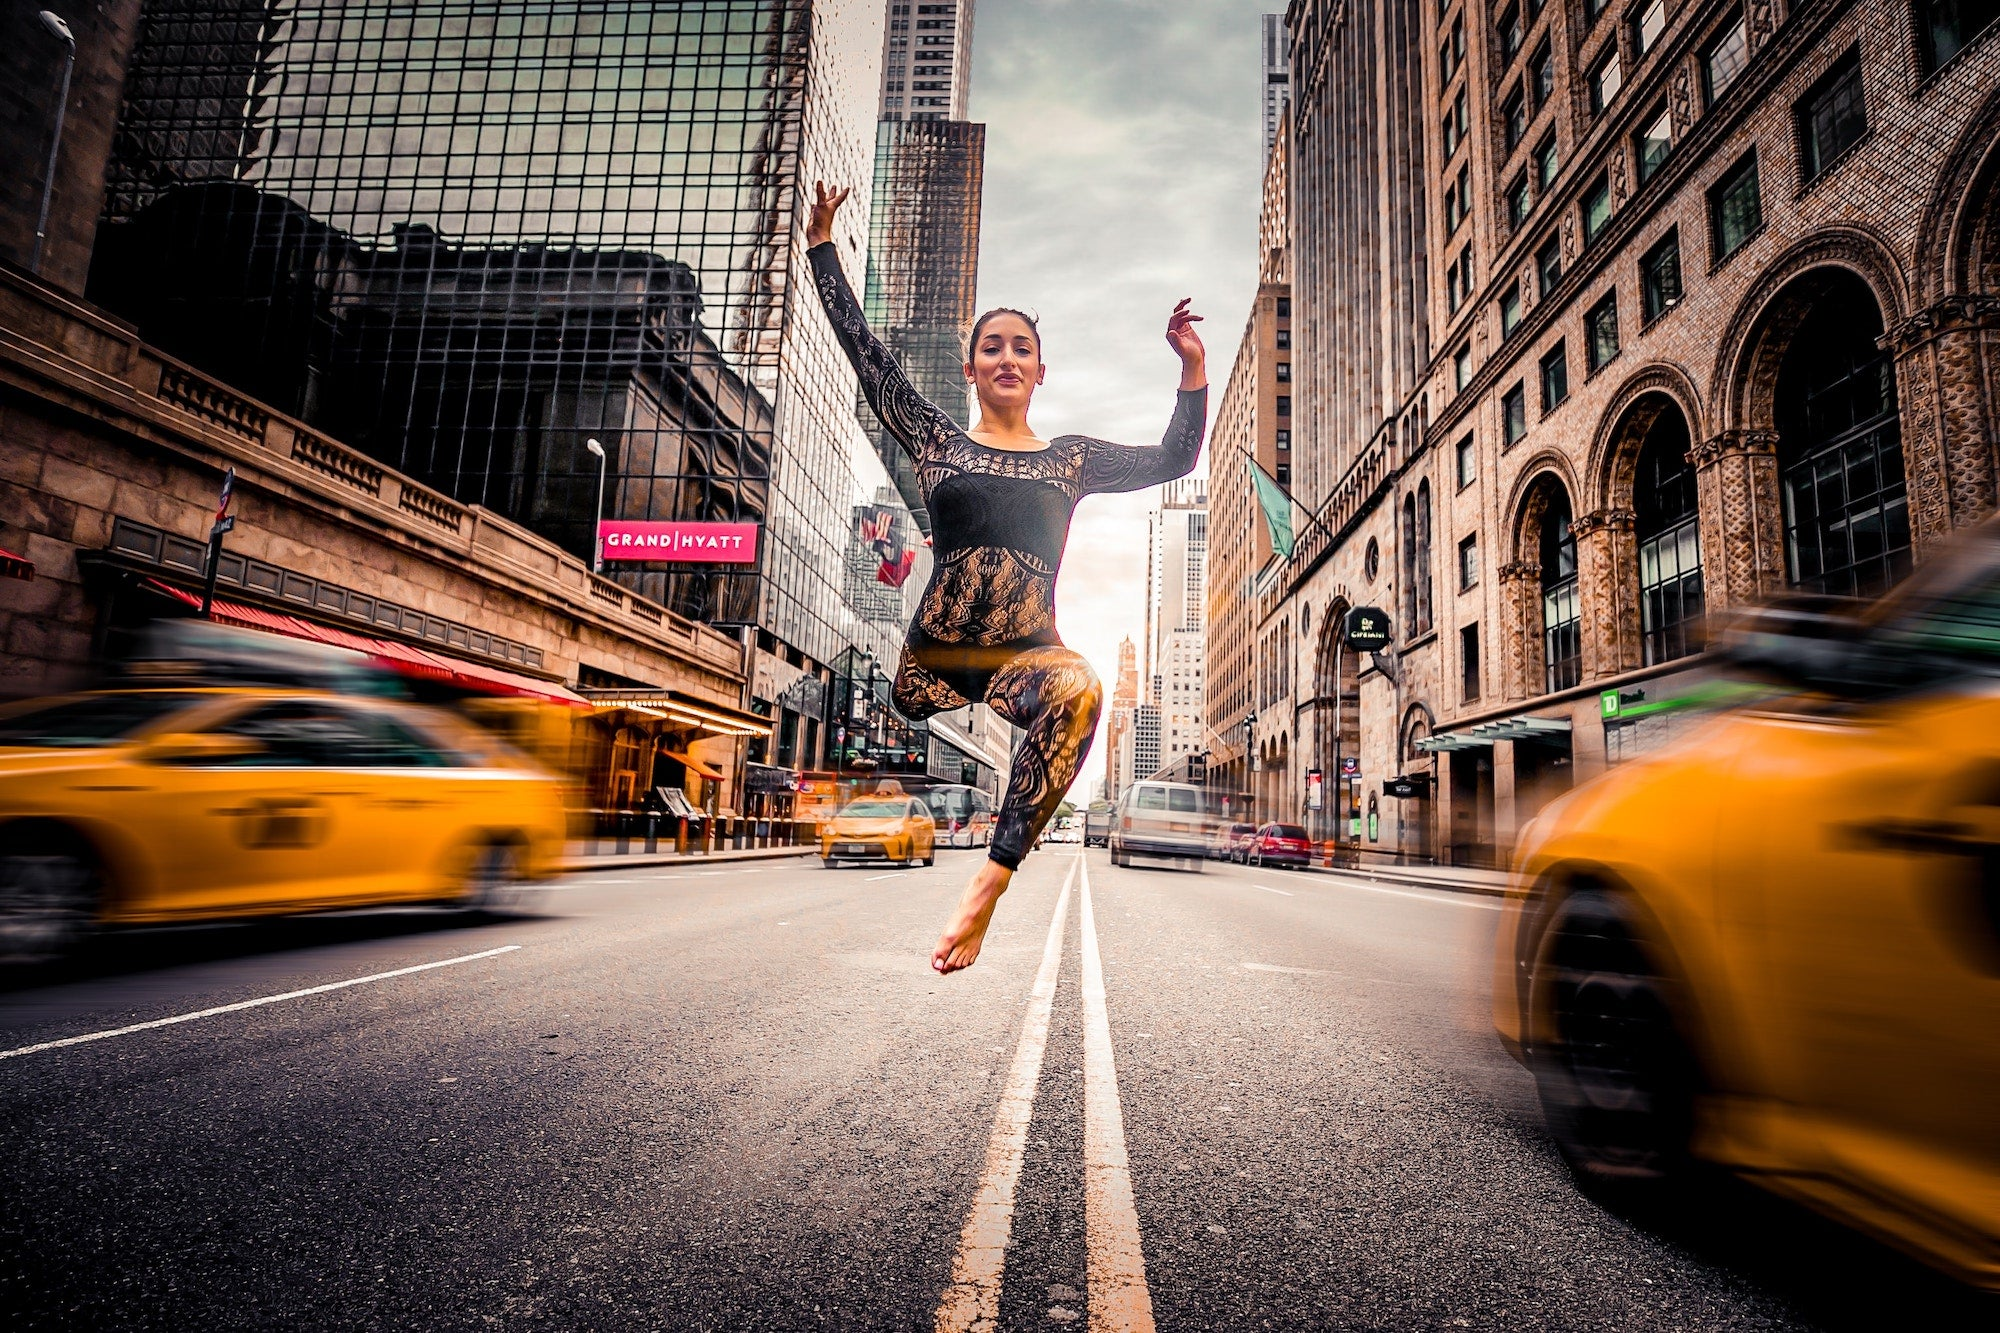 woman jumping in the middle of a busy street